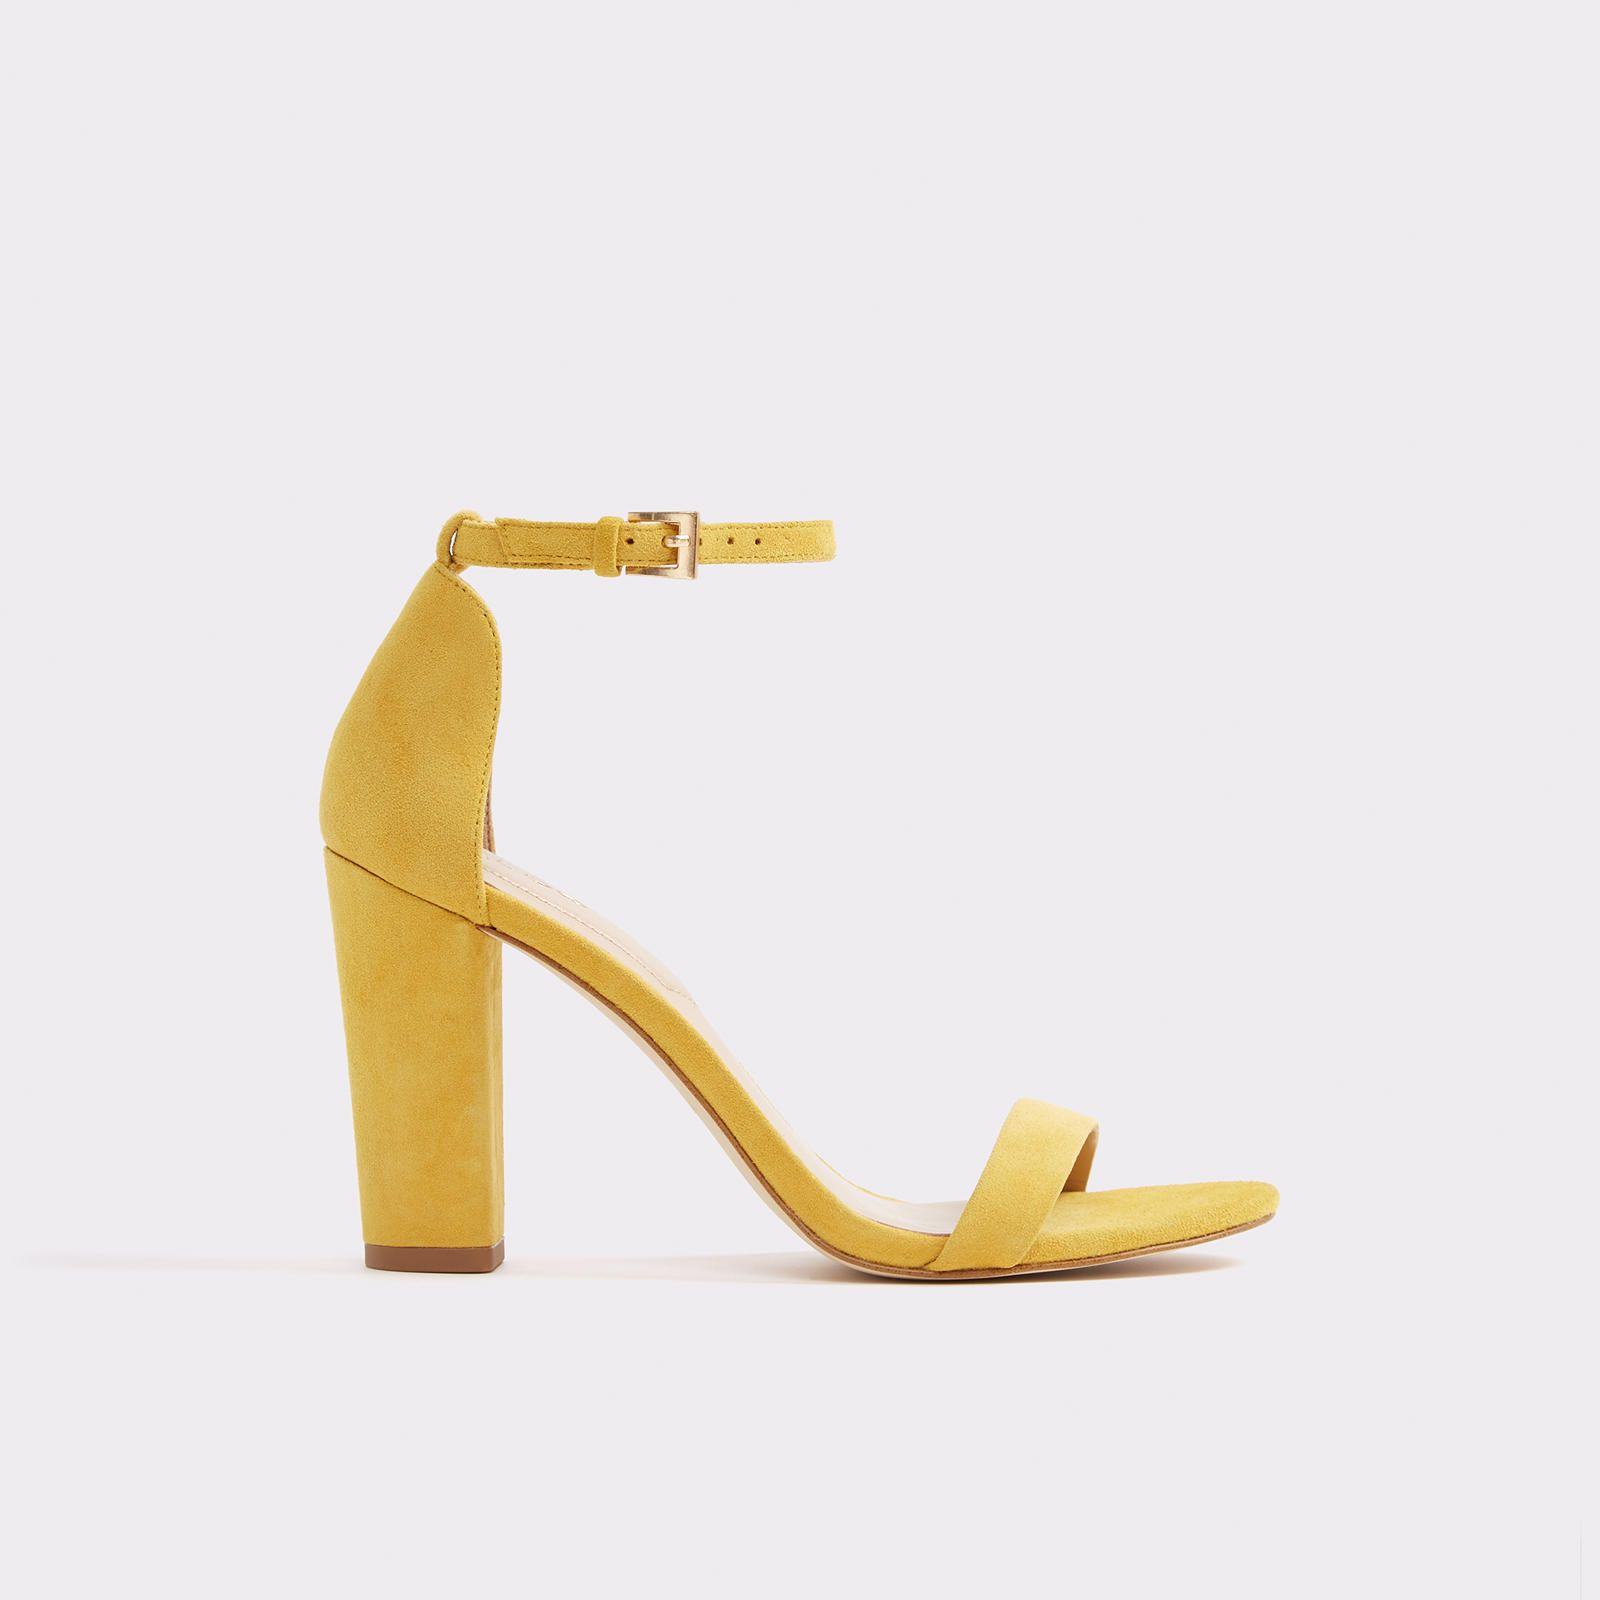 6960ffcfae6d Myly yellow misc. by Aldo Shoes - Main